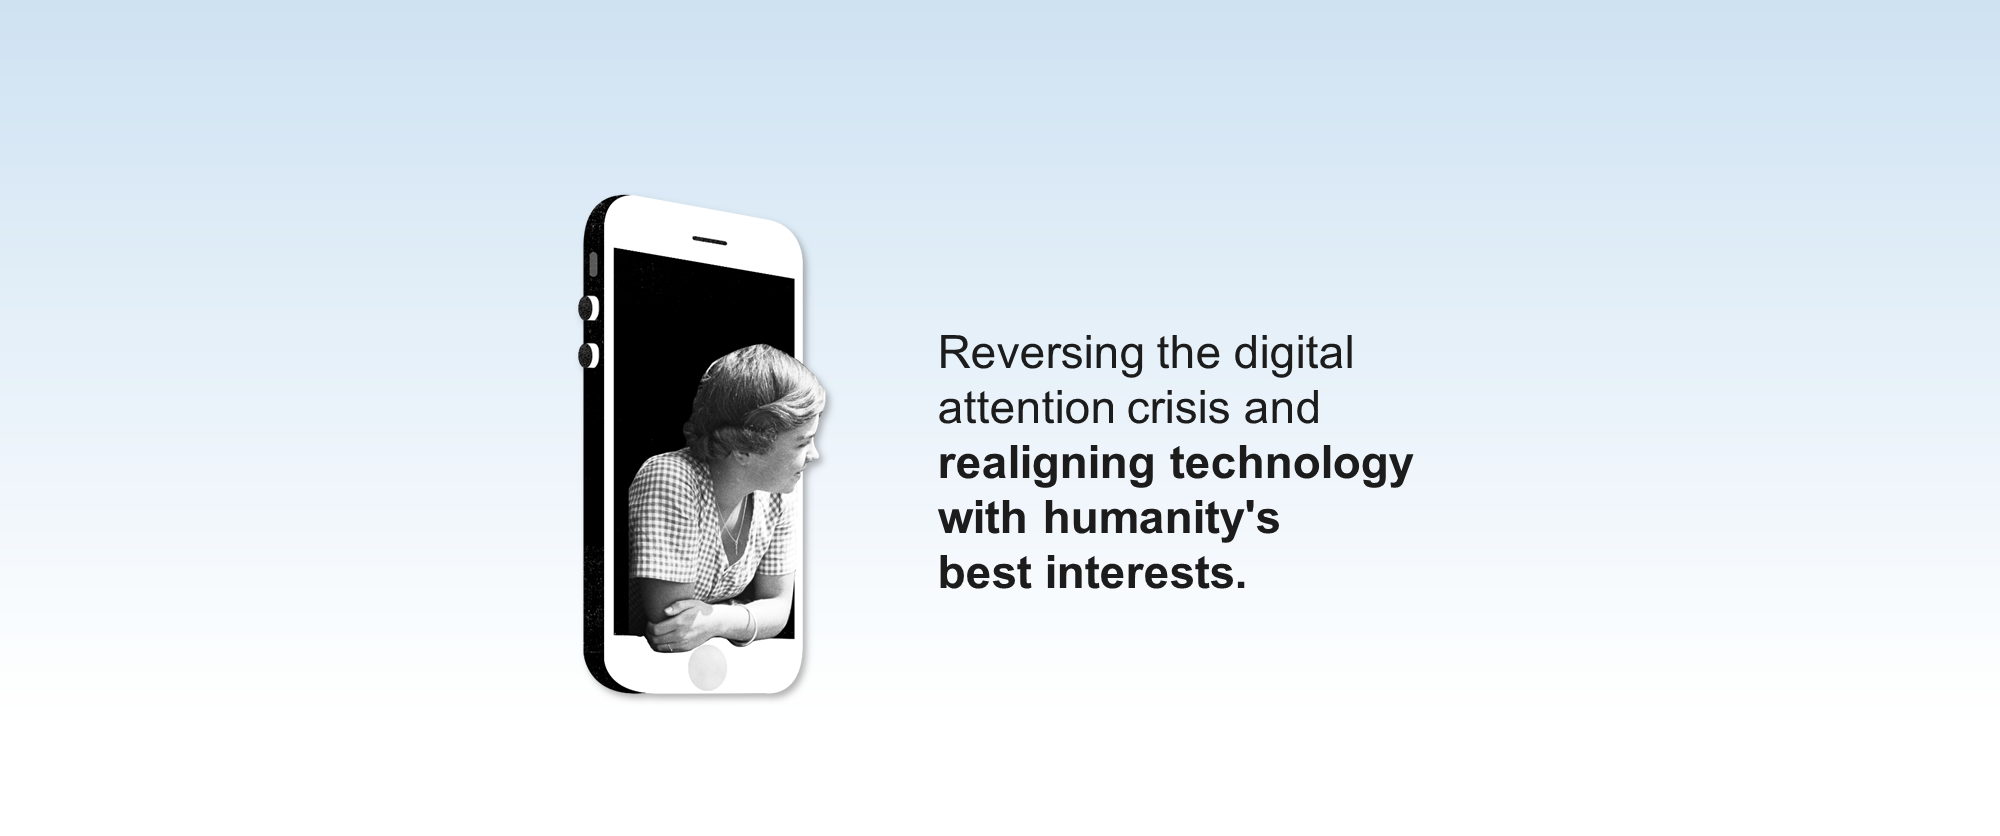 Center for Humane Technology: Realigning Technology with Humanity